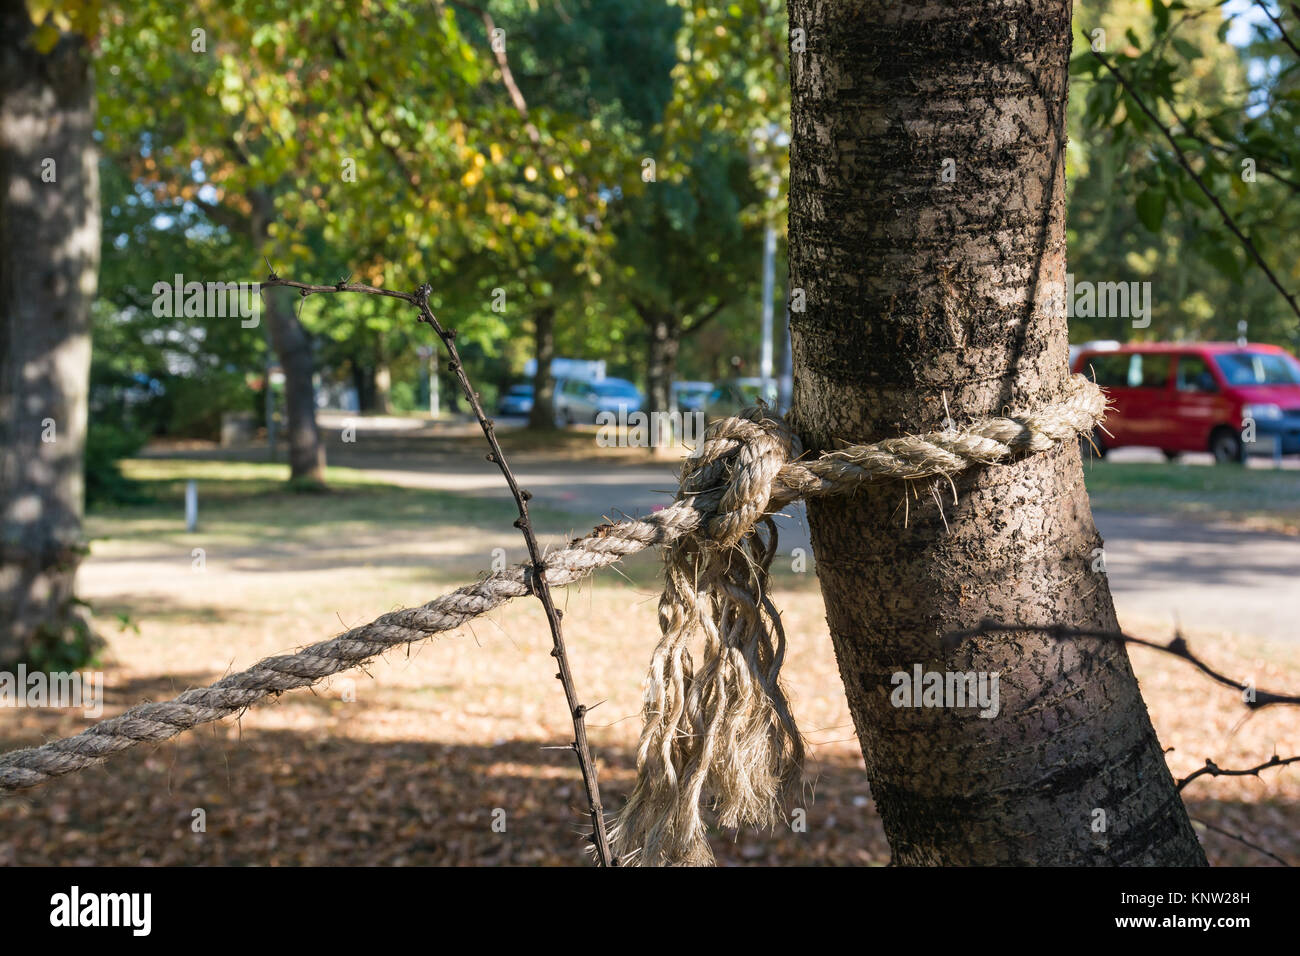 Rope Secure Tied Around Tree Trunk Strength Outdoors Morning - Stock Image